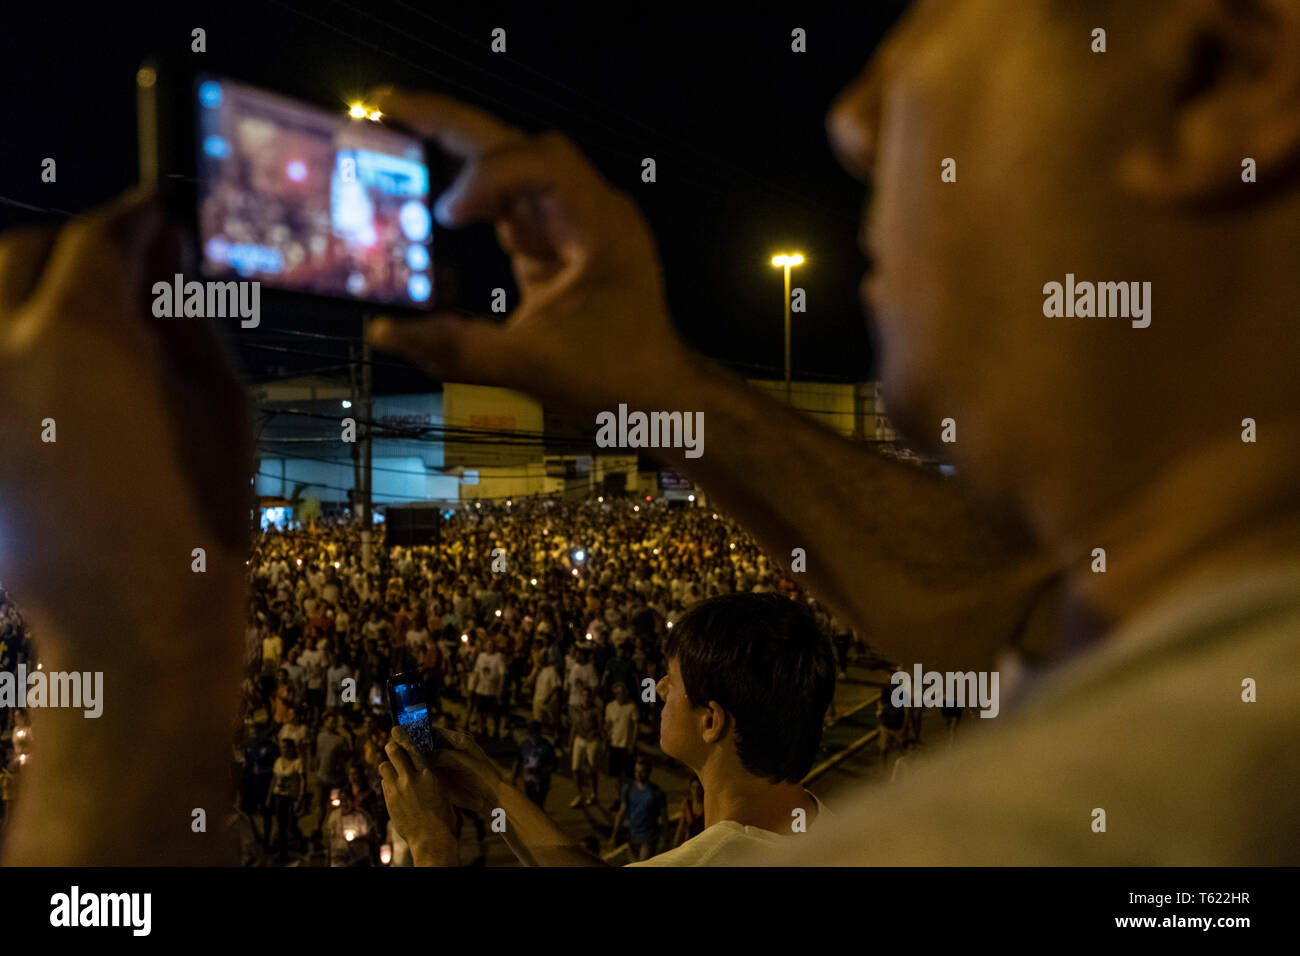 27 April 2019, Brazil, Vitória do Espírito Santo: Residents of the city film believers during the pilgrimage in the city of Vitória do Espírito Santo in southeast Brazil. The 'Romería de los hombres' (men's pilgrimage) is a pilgrimage of Catholic believers that has been celebrated every year since 1958. The pilgrimage is considered one of the three largest in Brazil. According to the Catholic Church, about 700,000 people attended the event this year. Photo: Diego Herculano/dpa - Stock Image